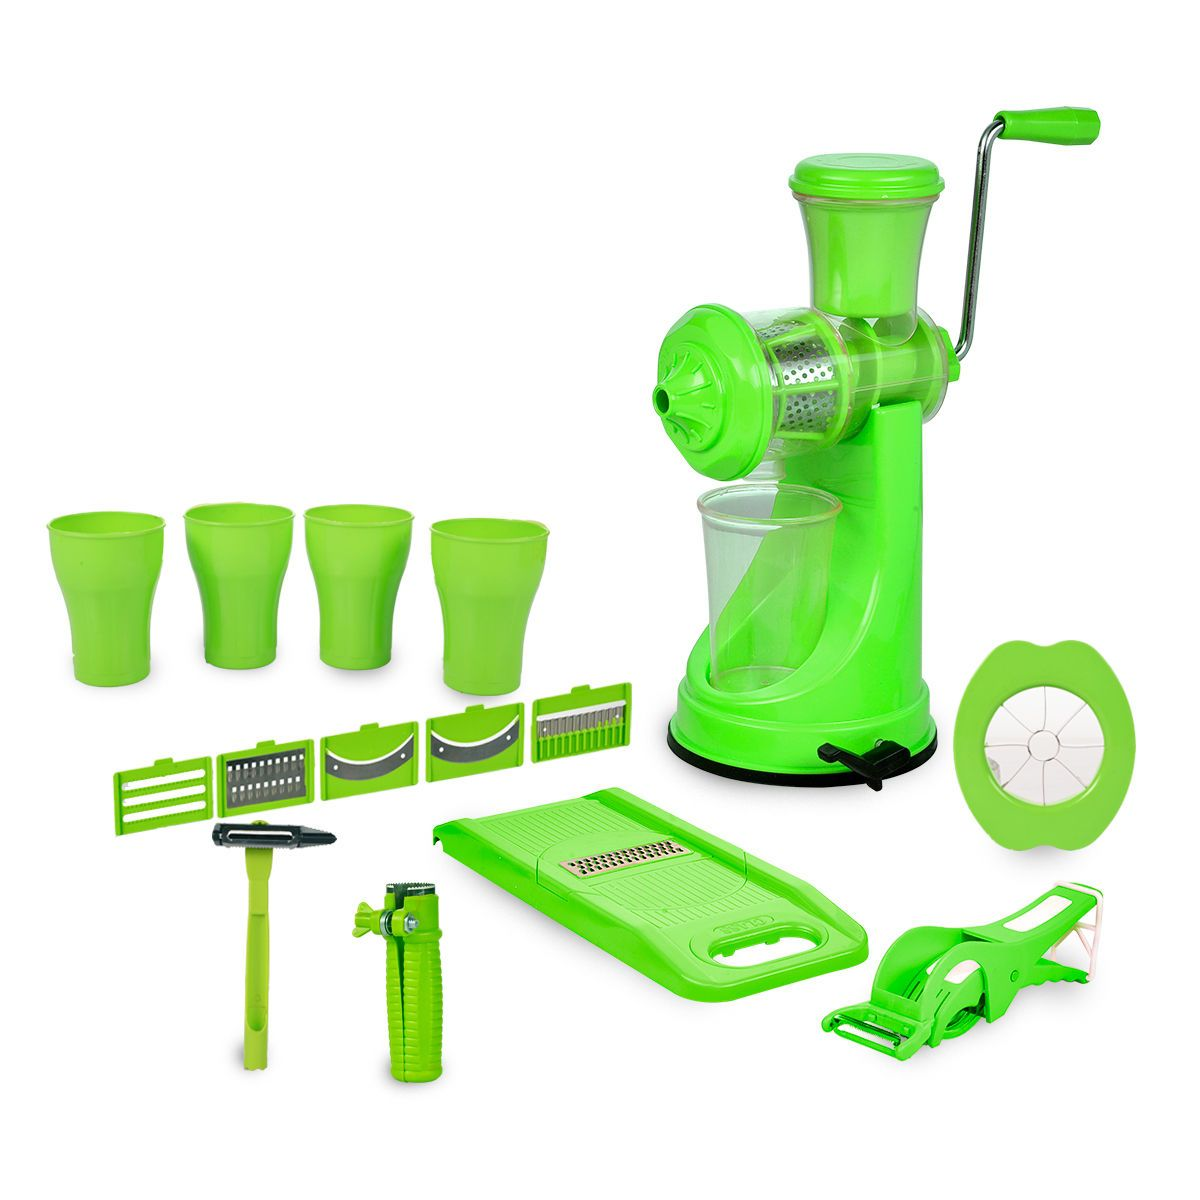 2042 Kitchen Combo - Juicer, 6 in 1 Slicer, Vegetable Cutter, Corn Cutter, Spiral Cutter, 4 in 1 Peeler, Orange Peeler, Apple Cutter and 4pc Glasses